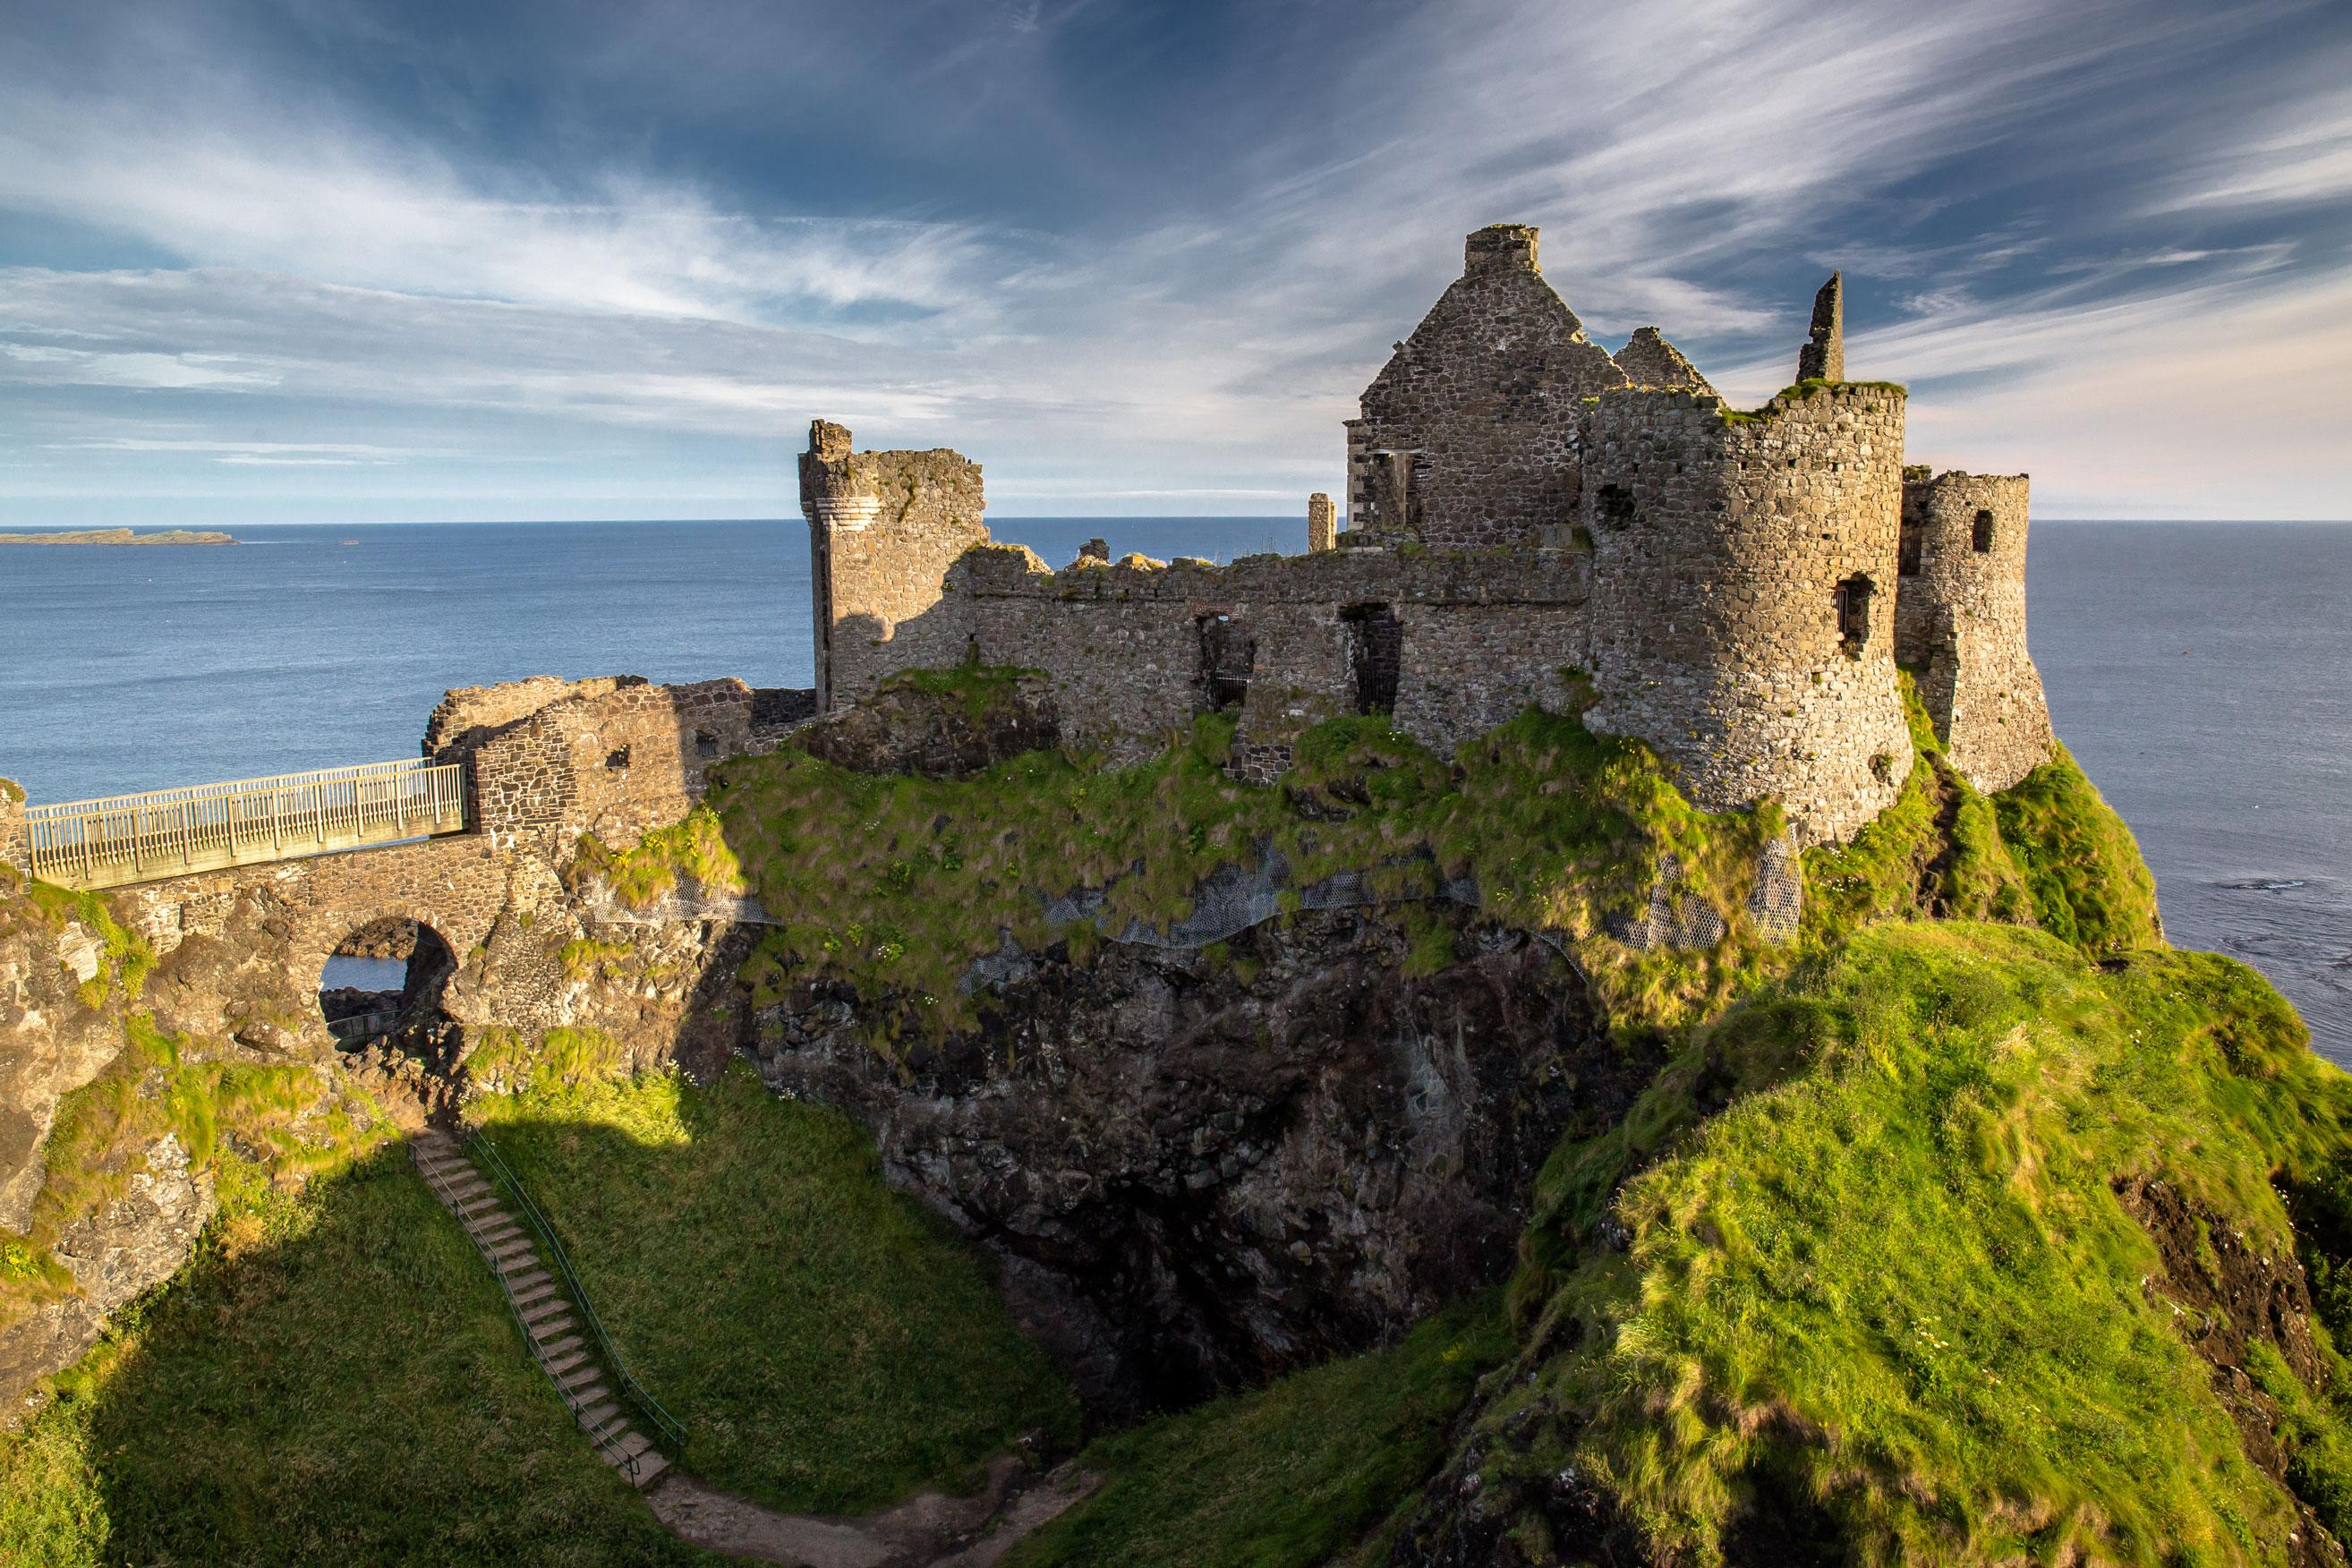 View of the ruins of Dunluce castle with an Ireland vacation package